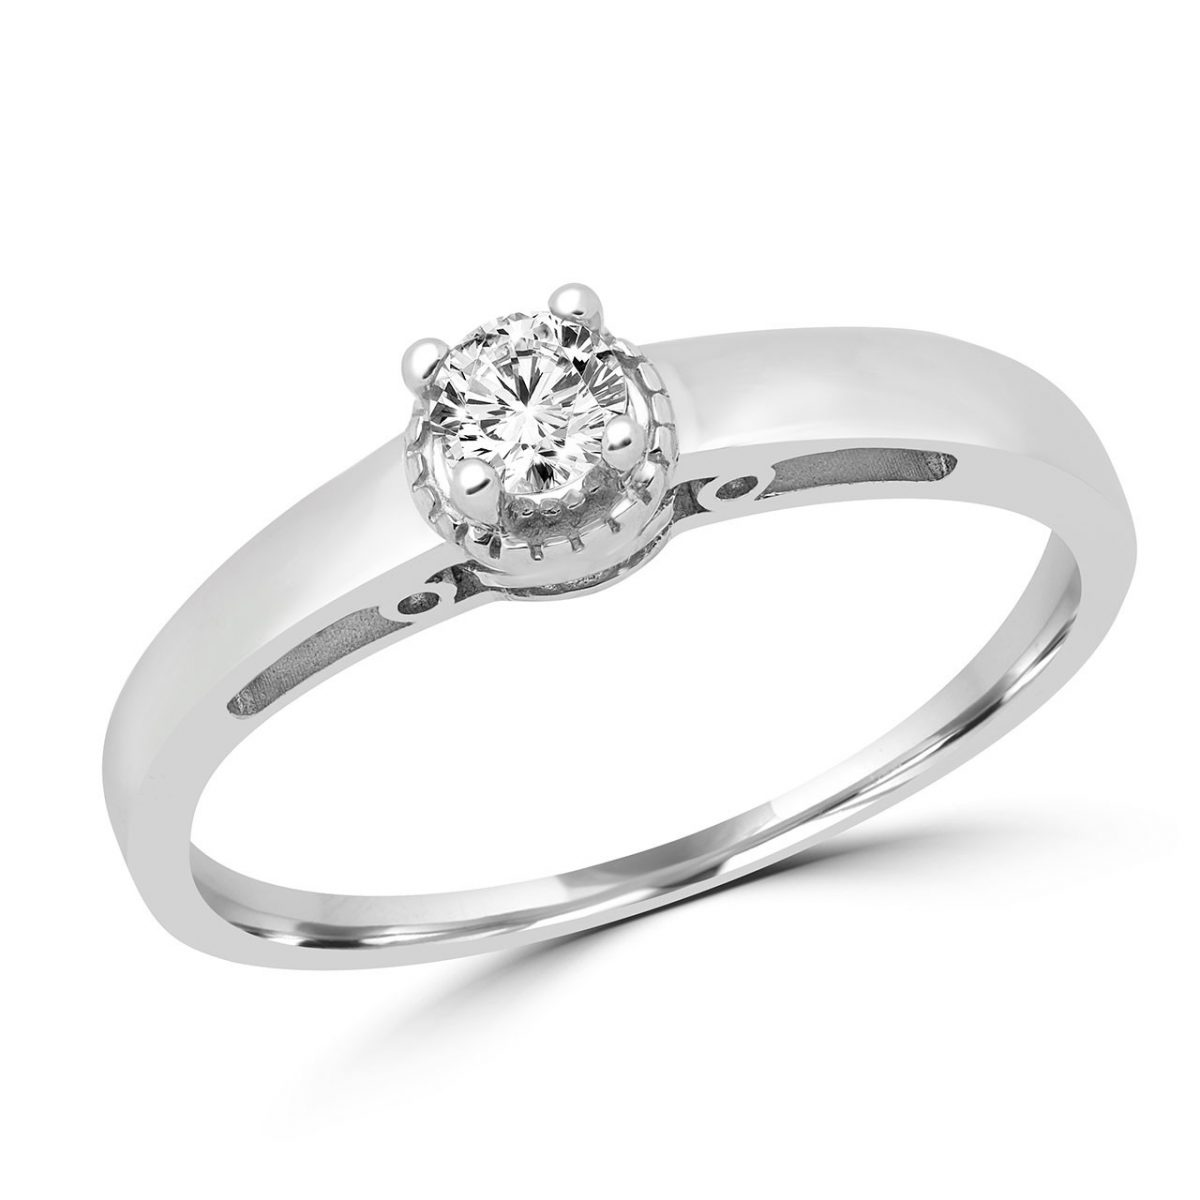 High Class Solitaire Engagement Ring 10k White Gold